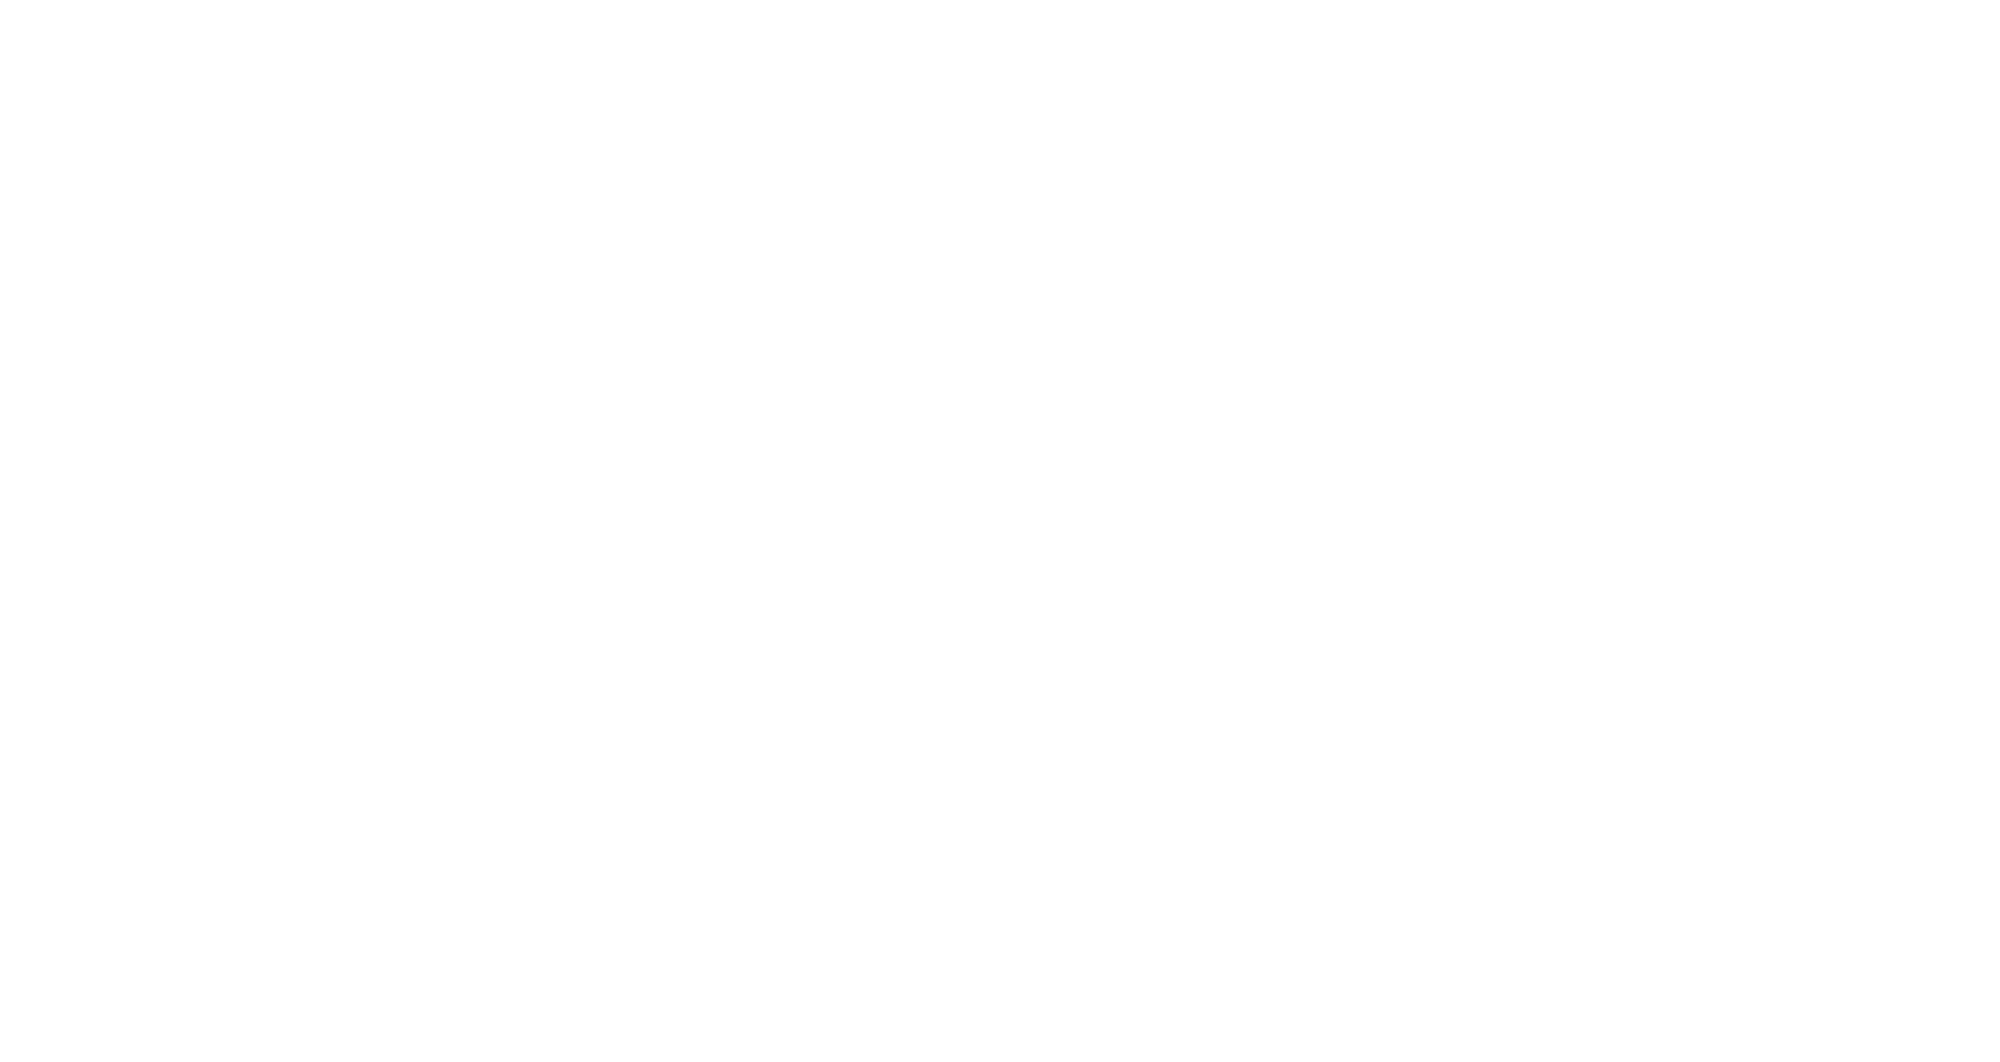 EXCELLENCE-logo-white.png